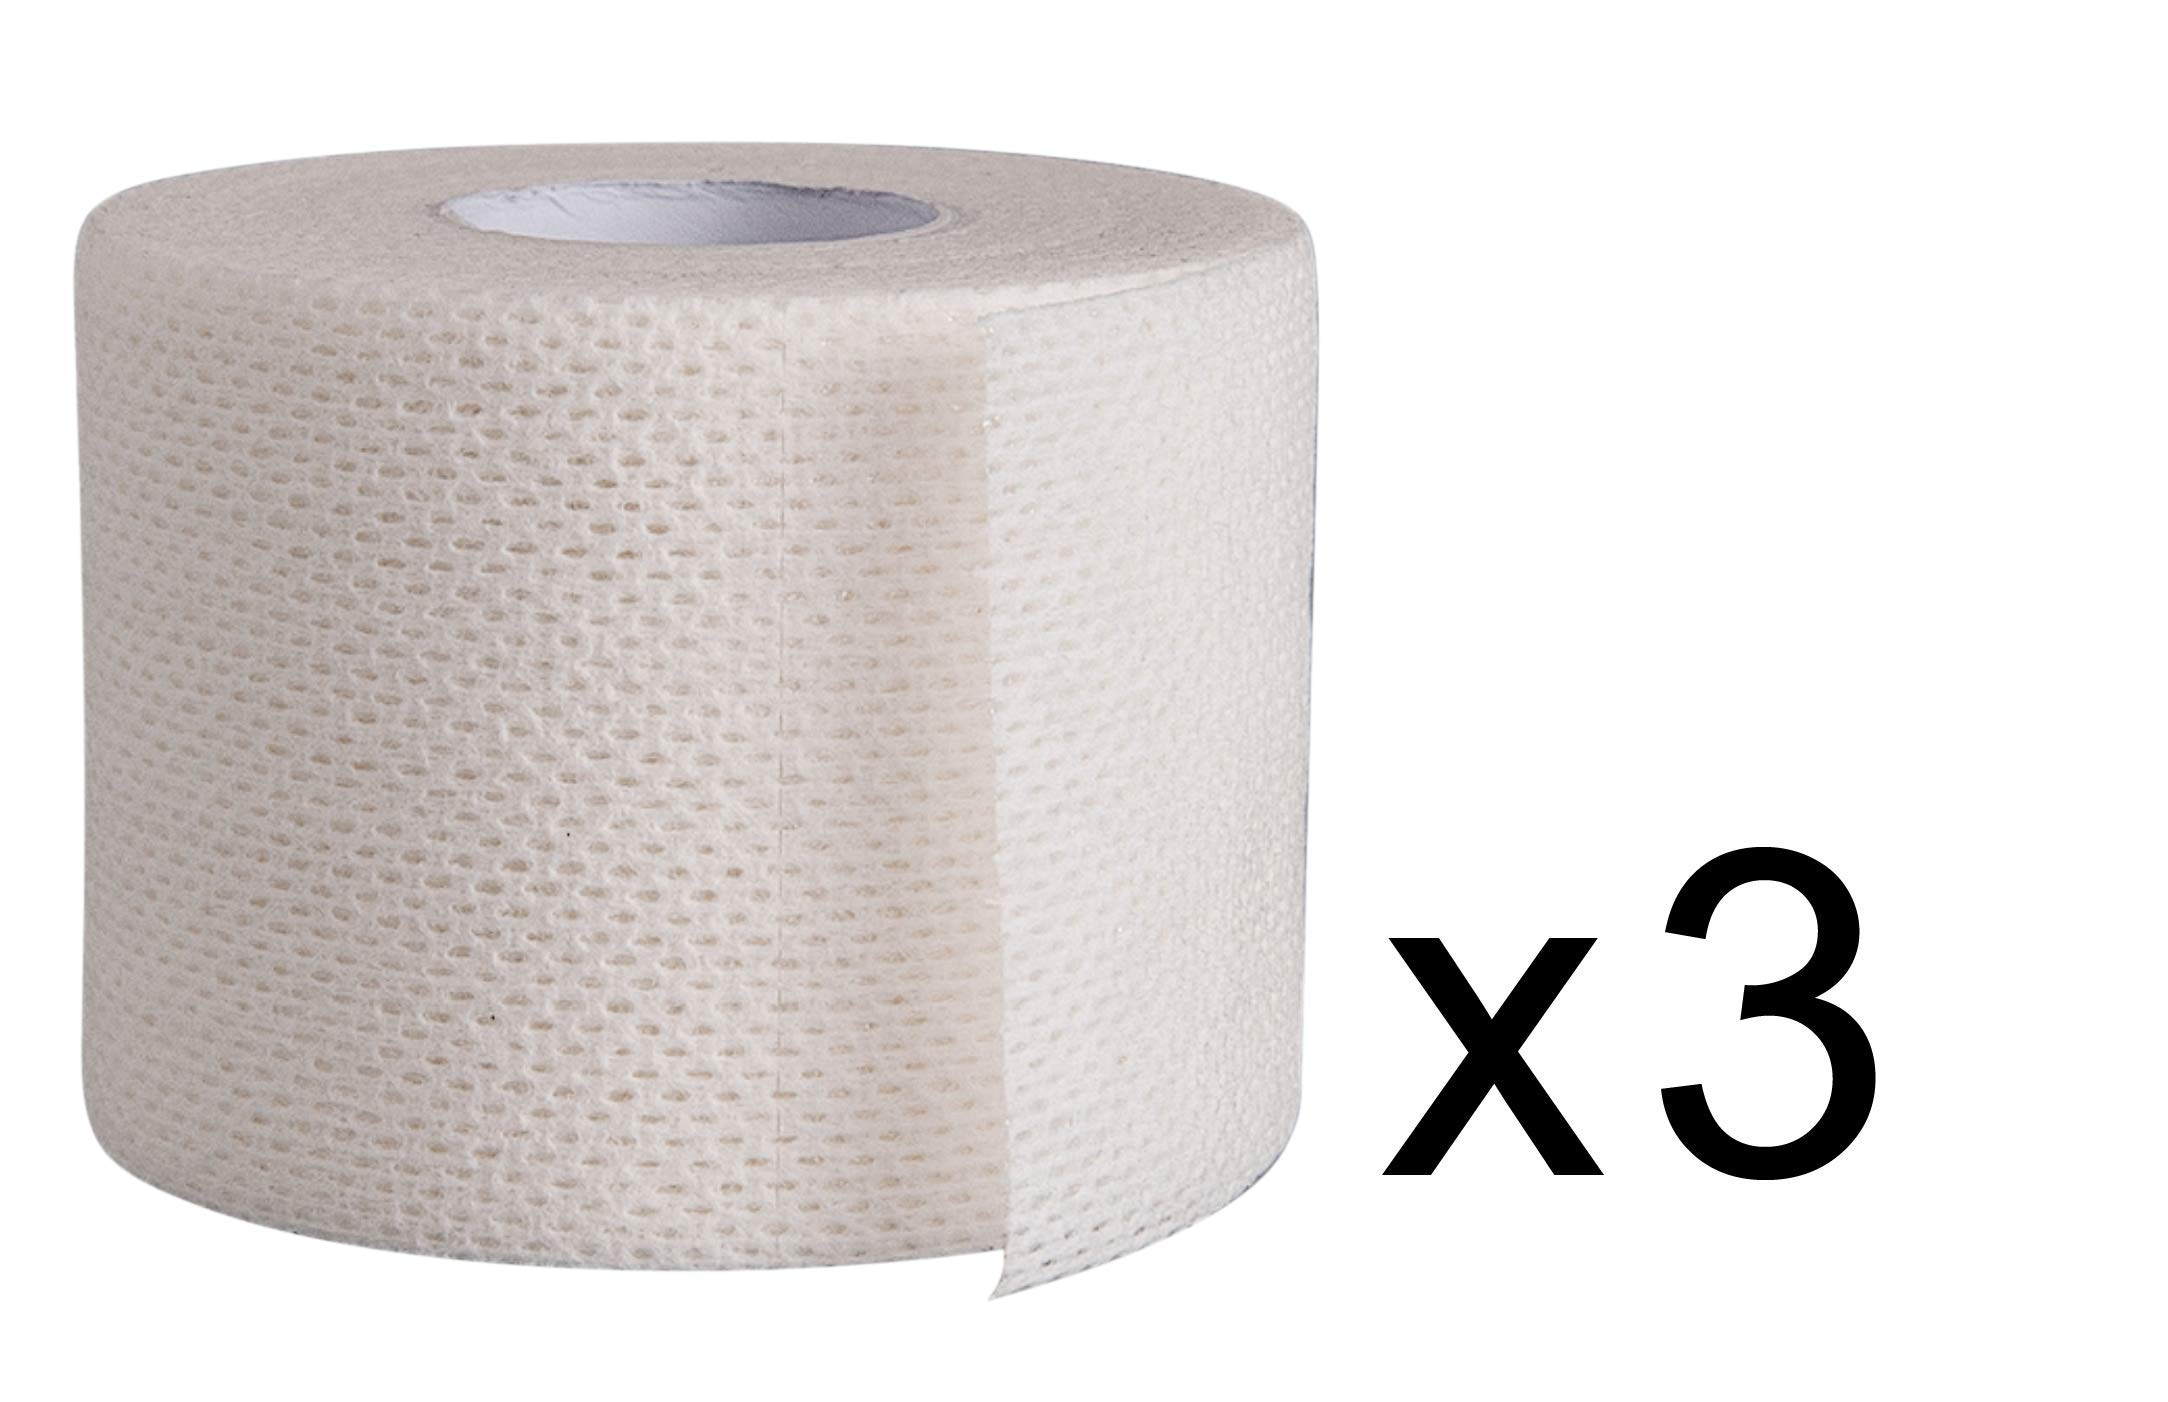 Surgical Tape Porous Skin Soft Fabric Cloth Adhesive Tape 2'' x 10 Yards Three Rolls; by Areza Medical by Areza Medical